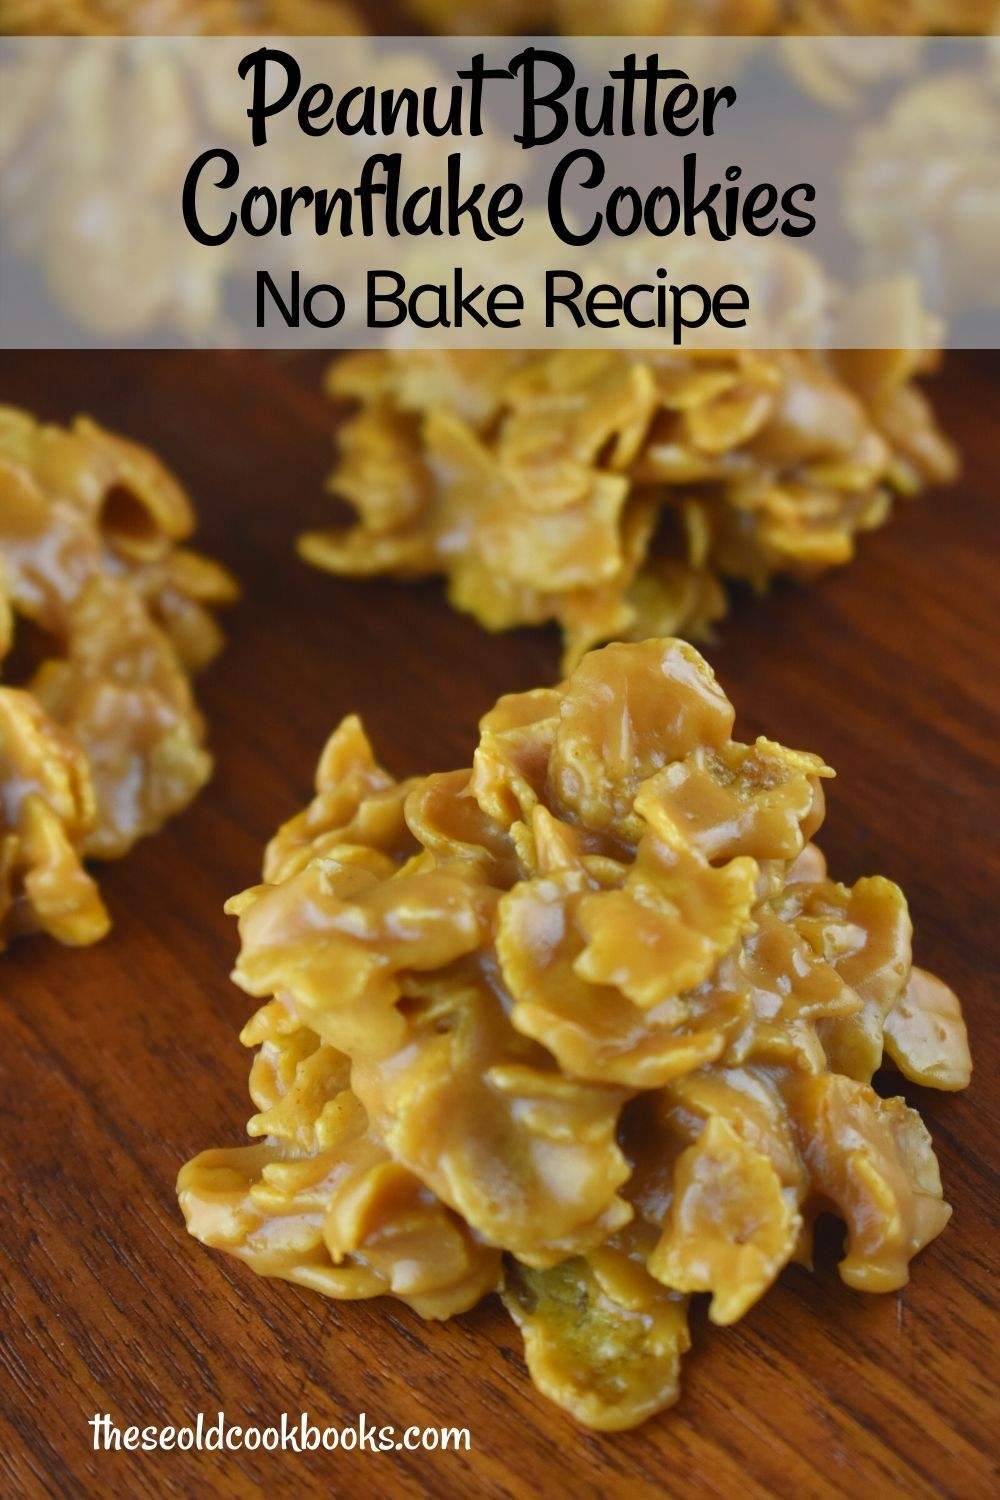 Peanut Butter Cornflake Drop Cookies Recipe - Thes